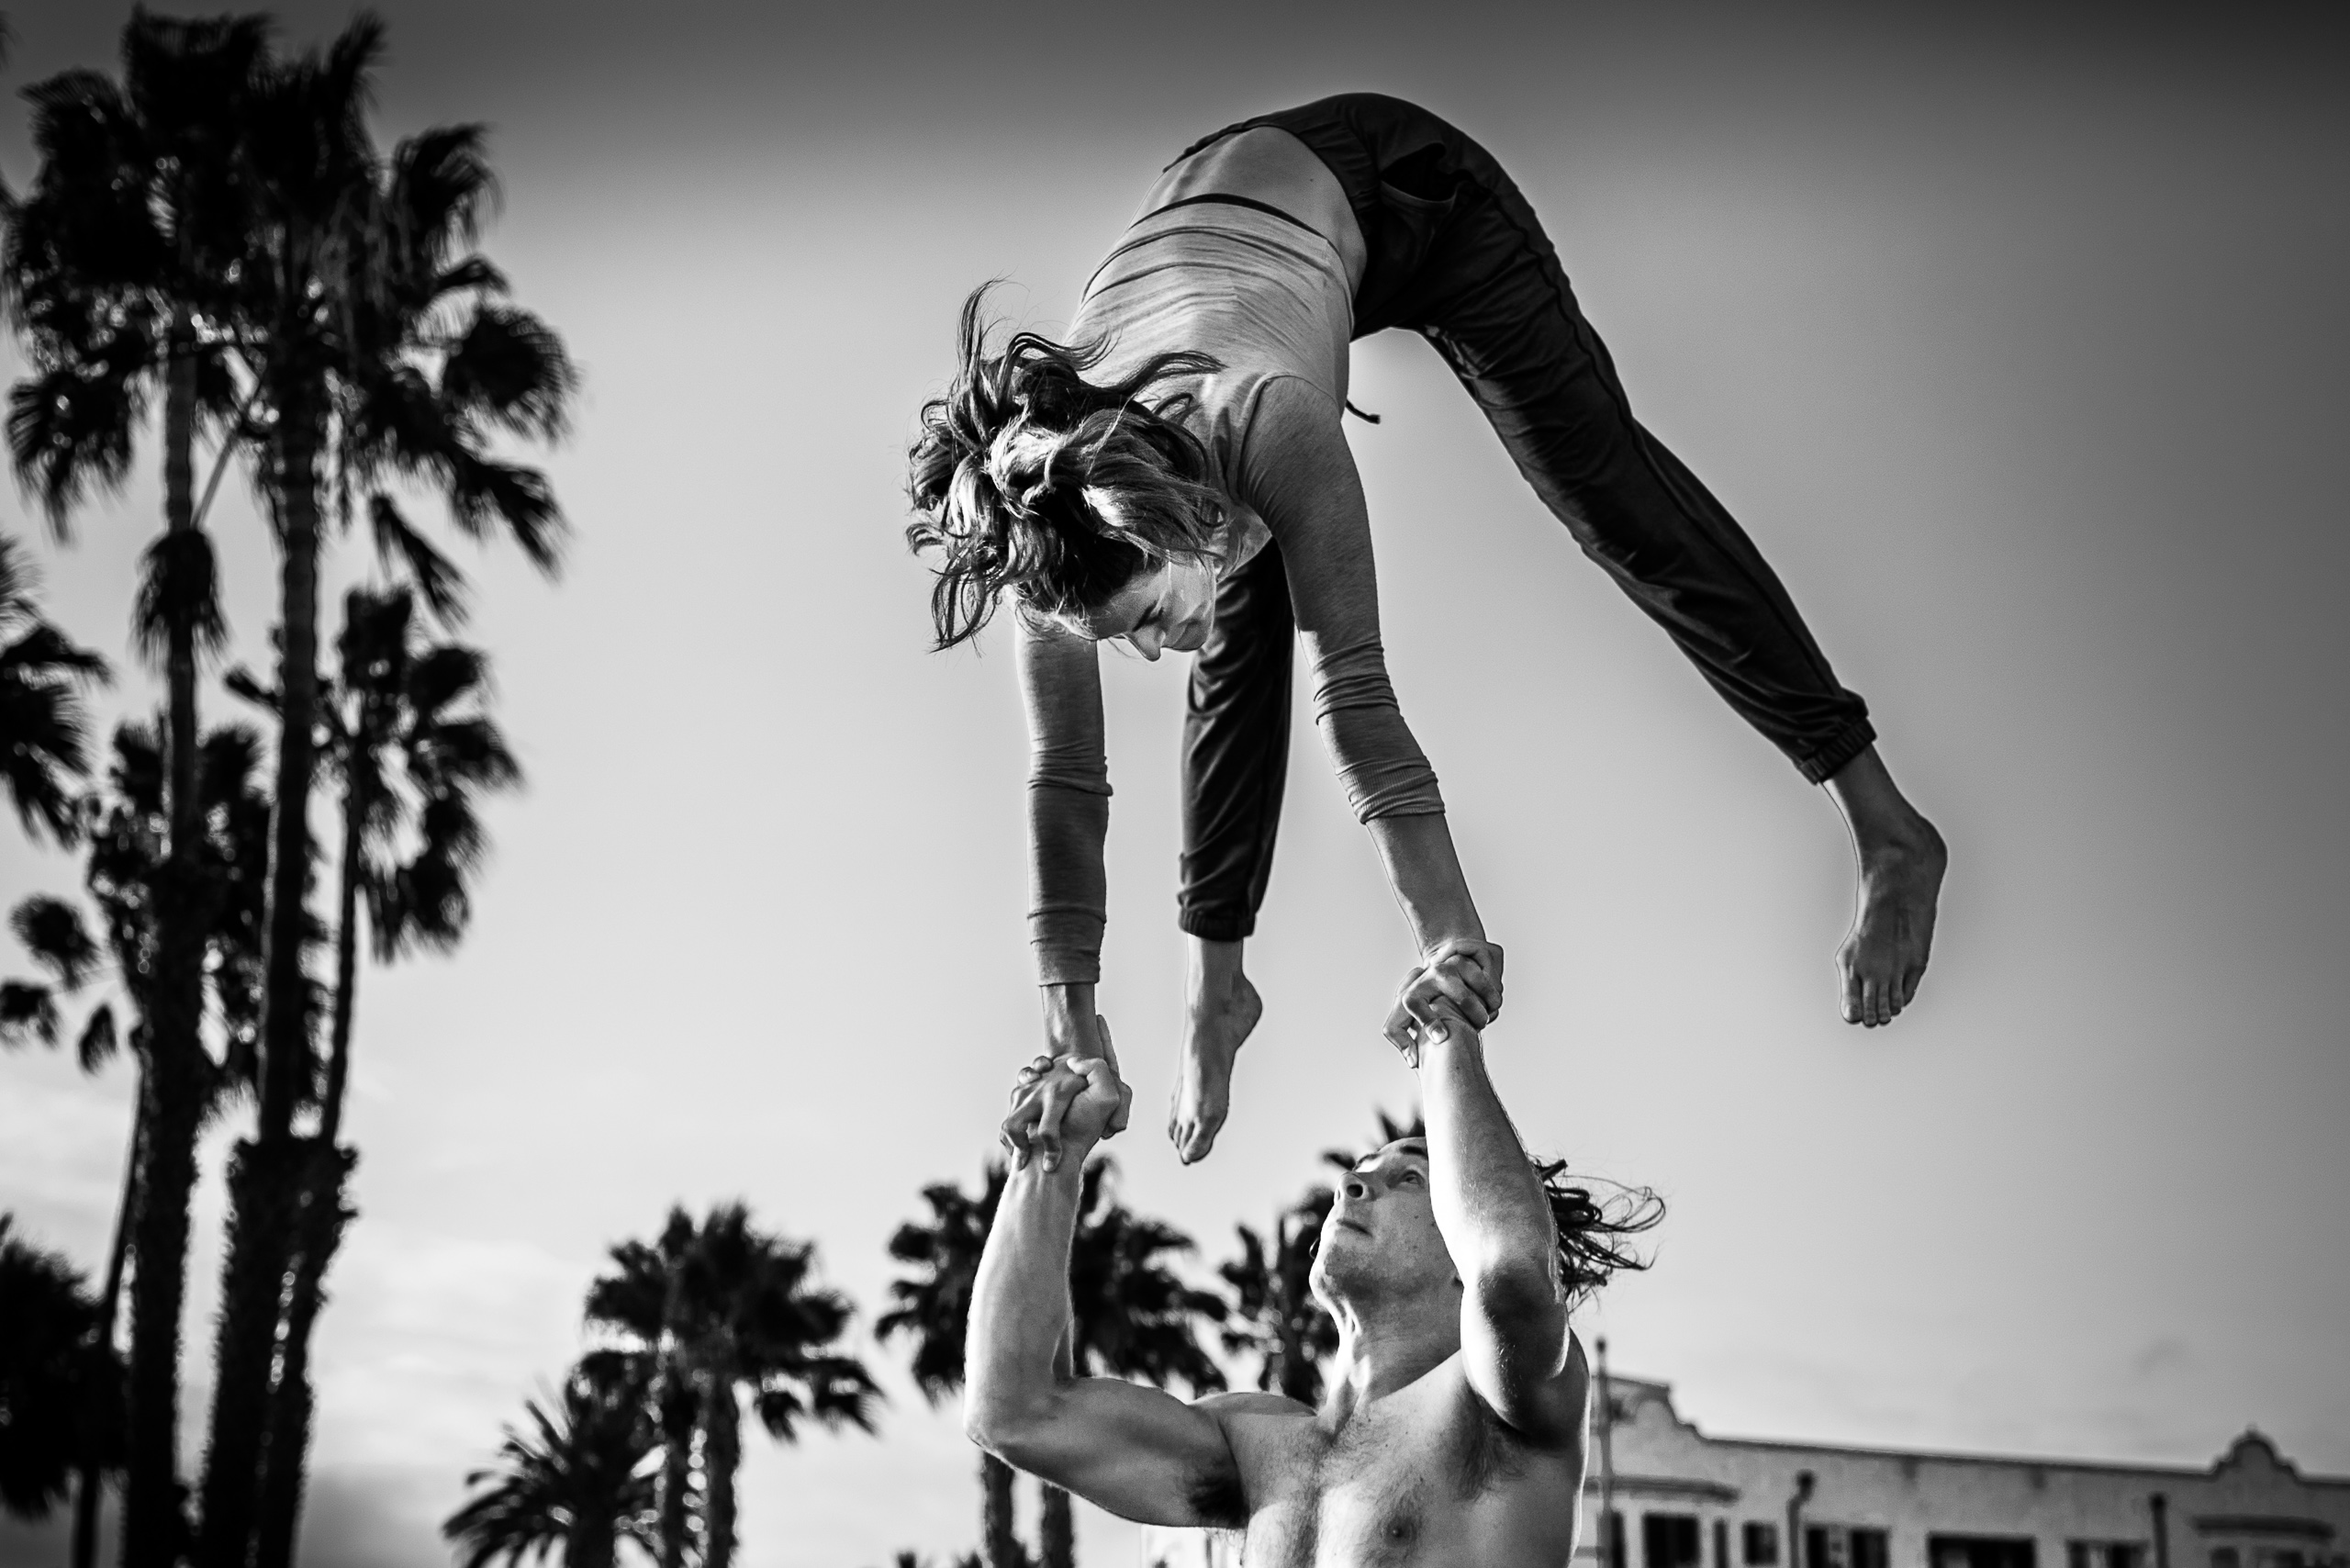 a man holds a woman in the air over his head as she does an inverted acrobatic move